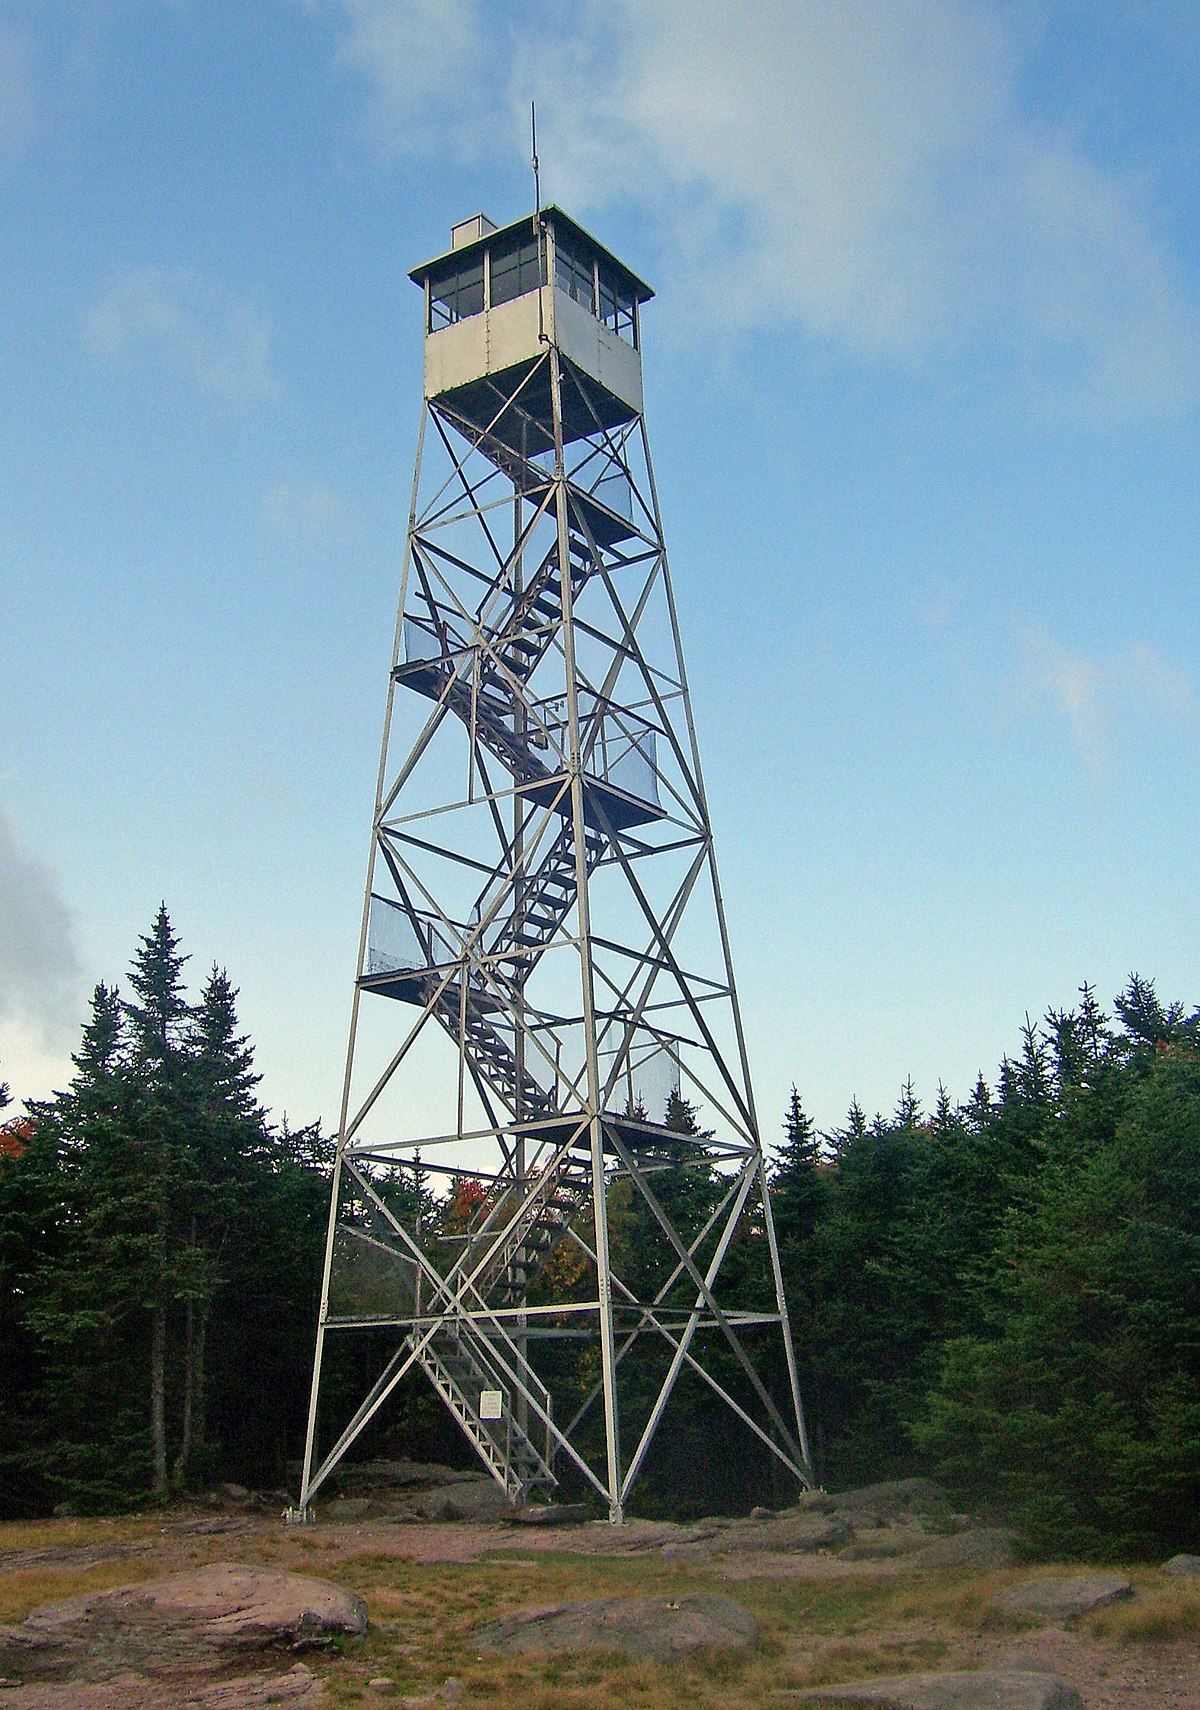 balsam lake mountain fire observation station wikipedia